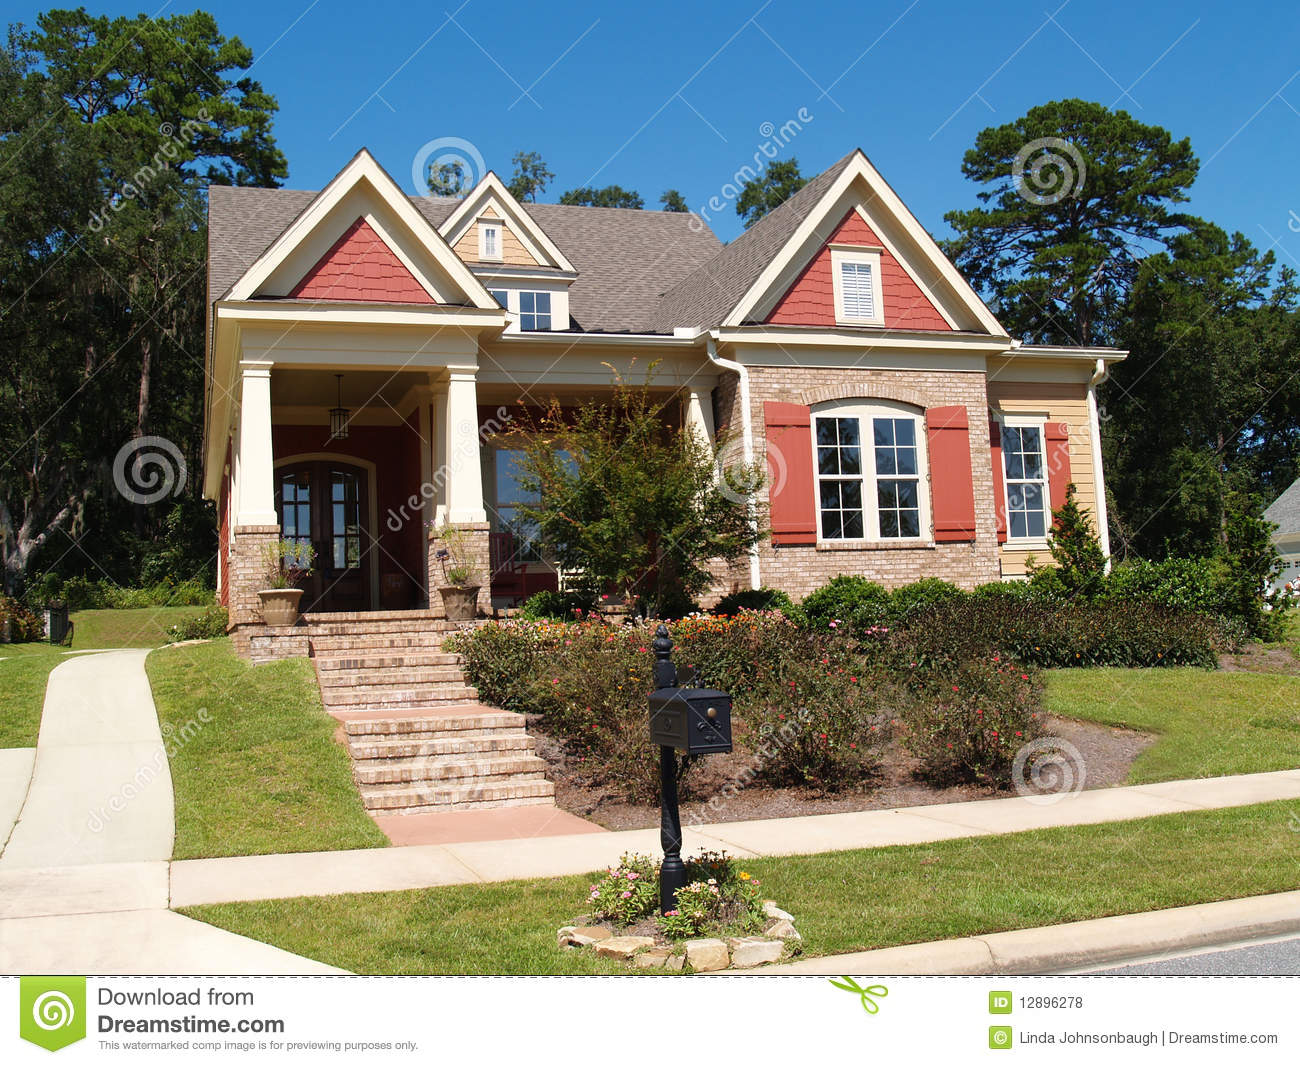 appealing living room stairs royalty free stock image 27532276 | Brick Home With Porch And Gables Royalty Free Stock Photos ...